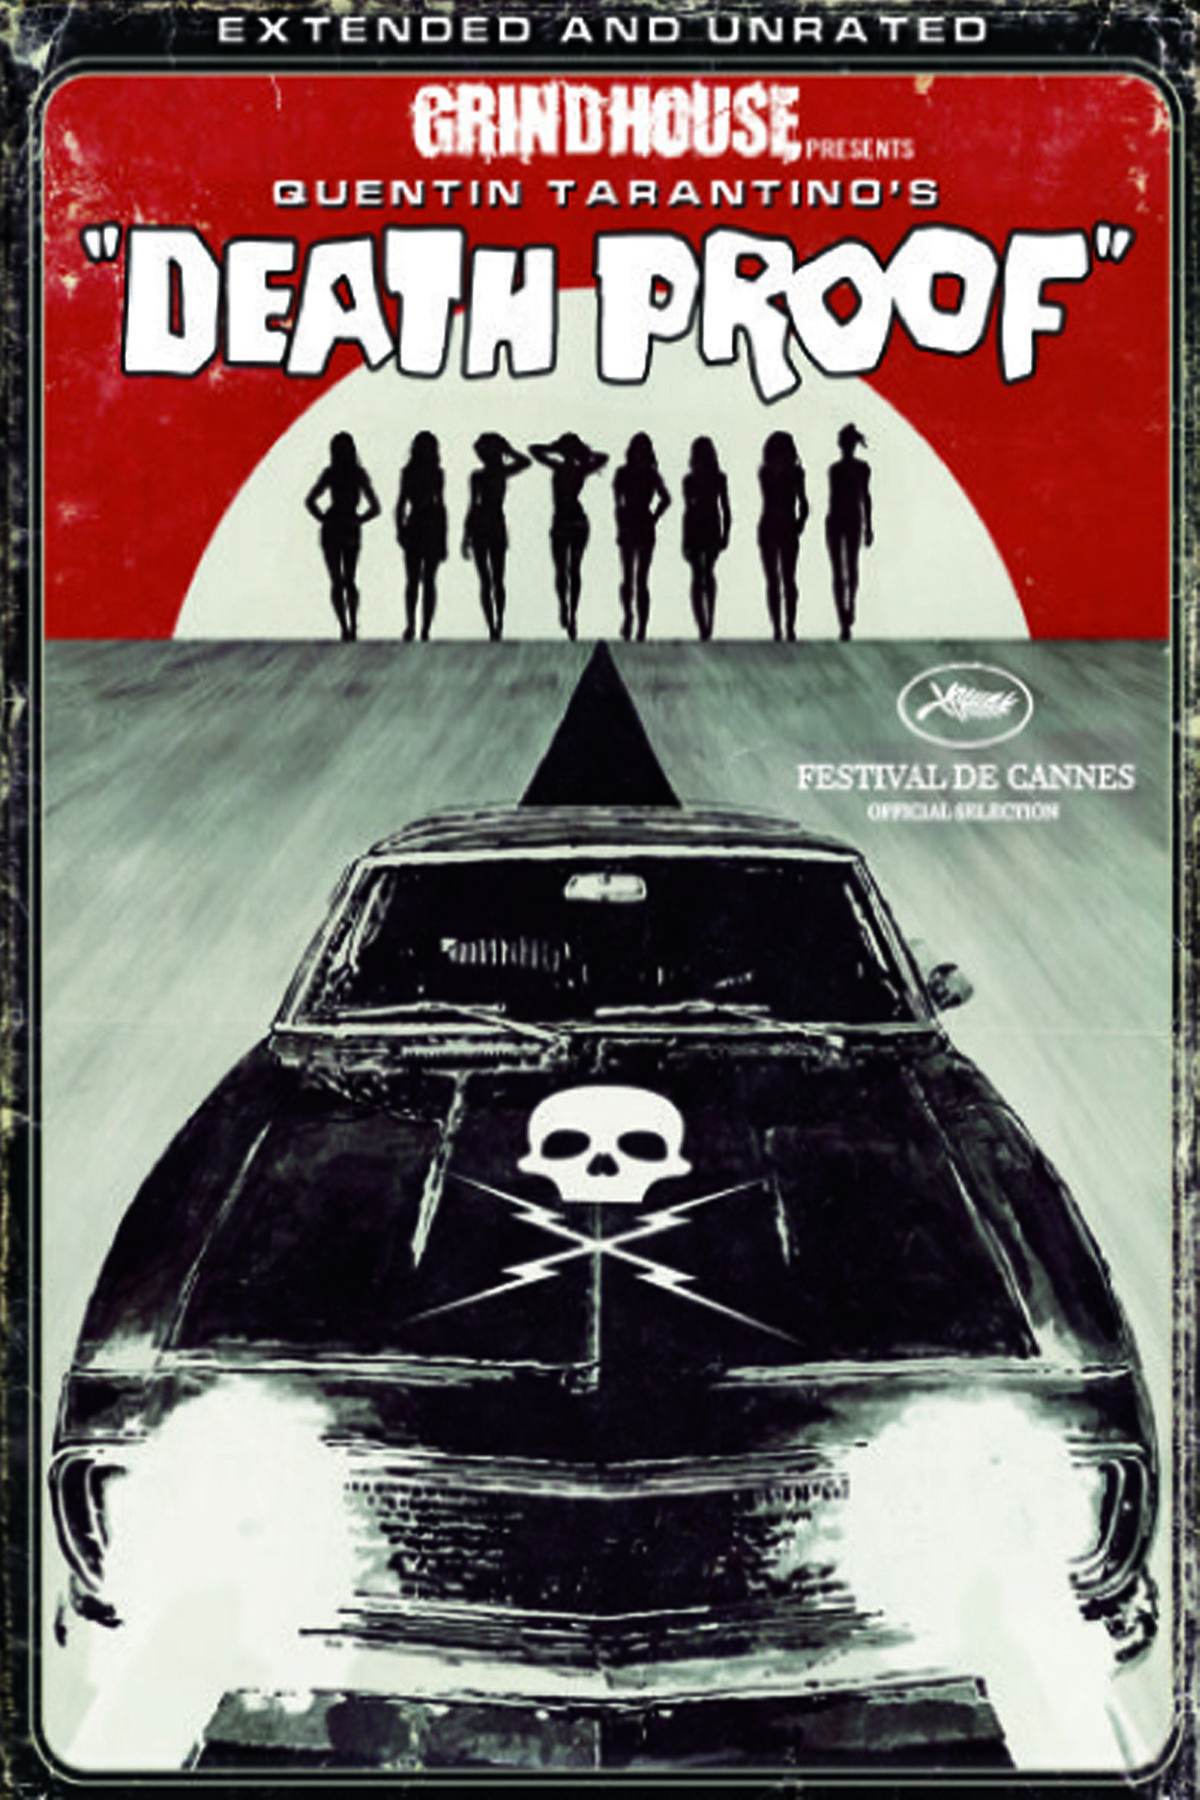 Death proof extended and unrated special edition on dvd from weinstein company directed by quentin tarantino more action revenge and thrillers dvds